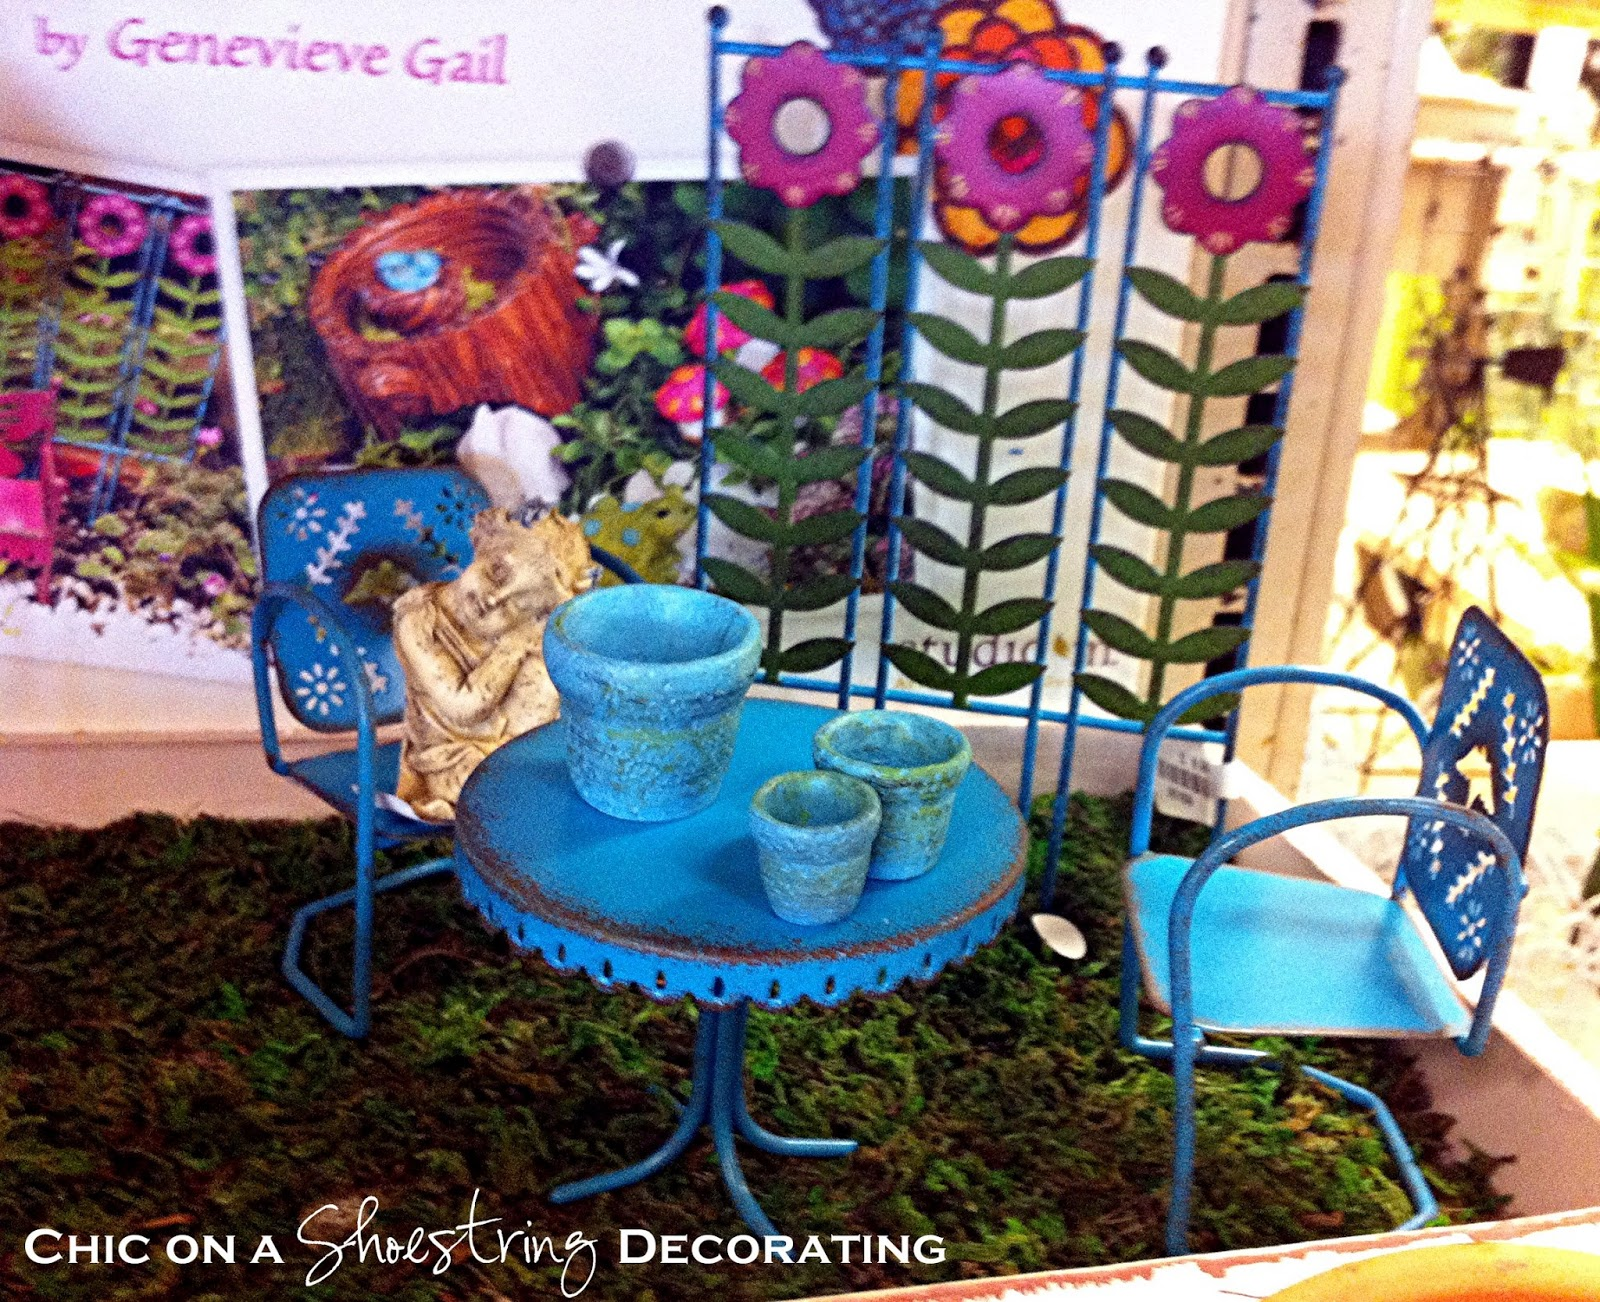 chic on a shoestring decorating: fairy gardens that's right, i